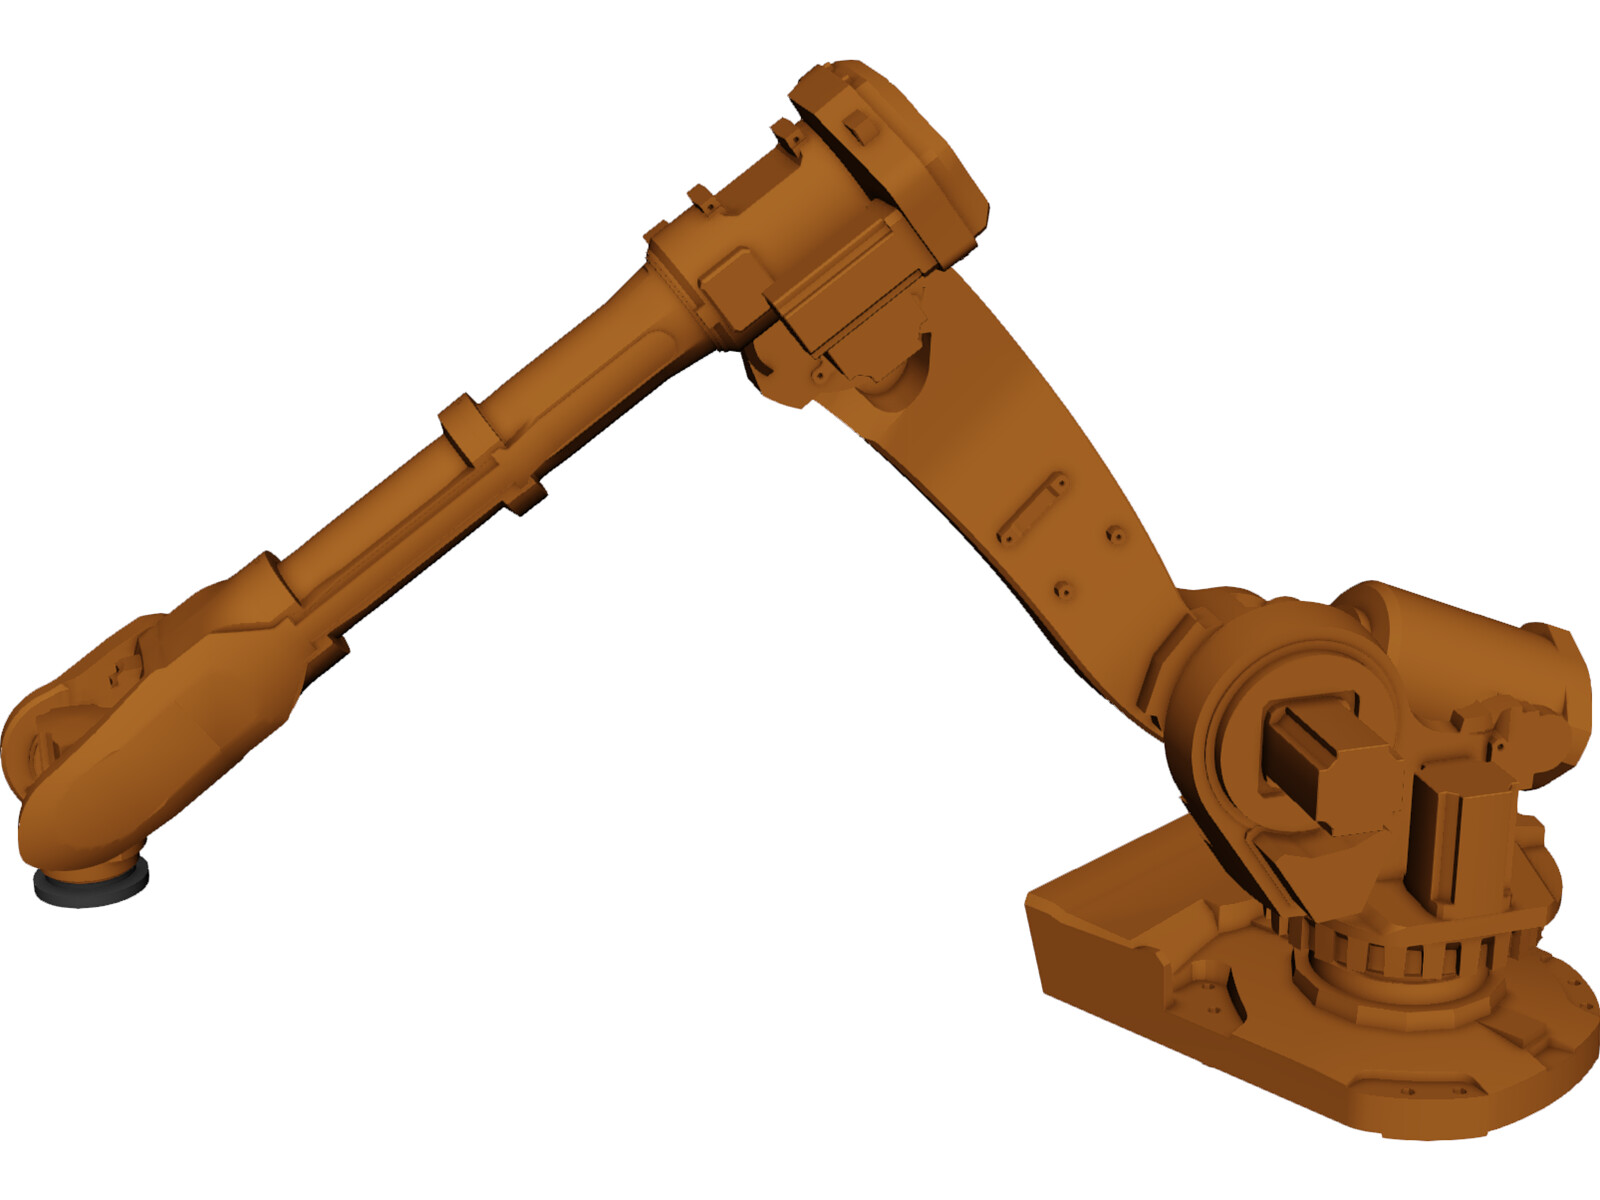 Robot 6 Axis [NURBS] 3D Model